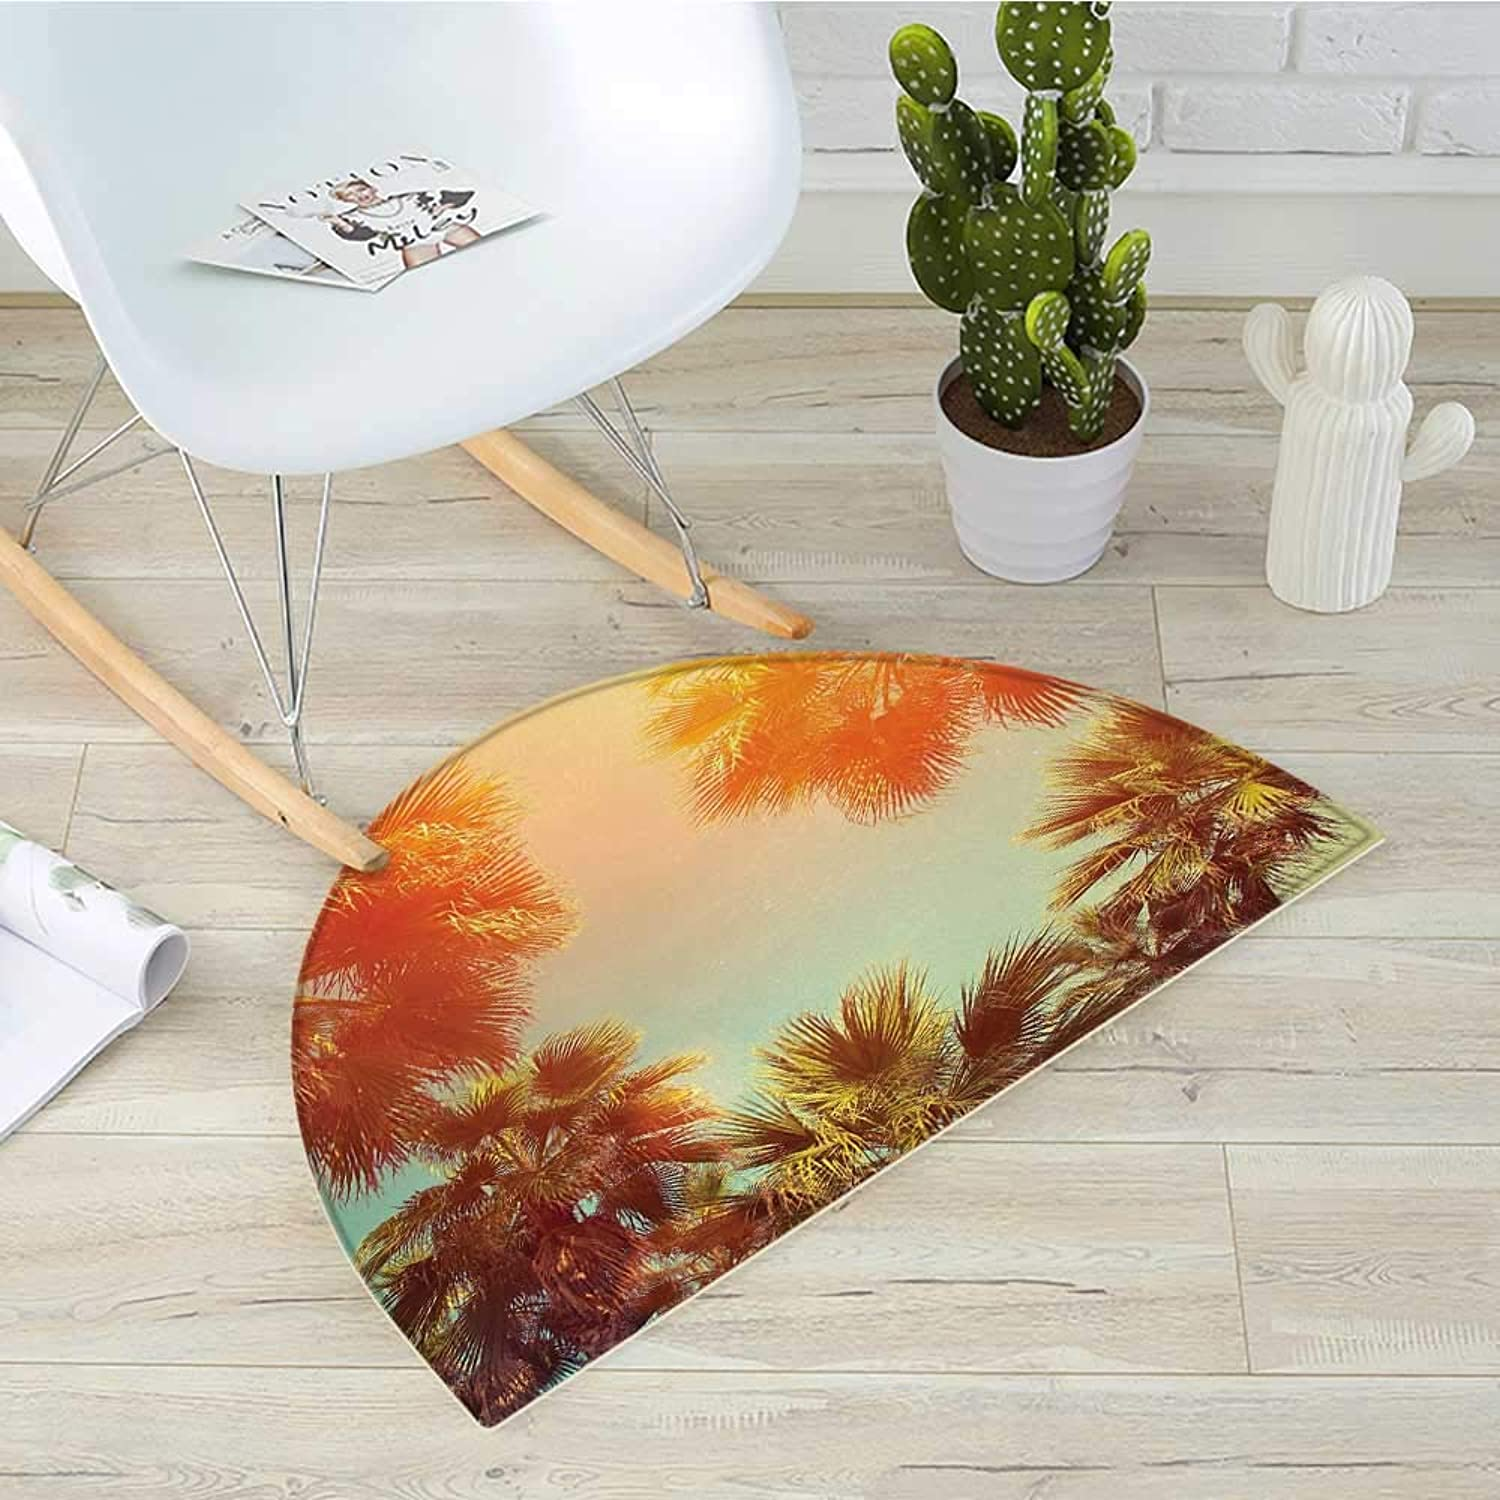 Palm Tree Semicircle Doormat Trees in Sunlights Tranquility in Tropical Nature Landscape at Summer Theme Halfmoon doormats H 43.3  xD 64.9  orange Green